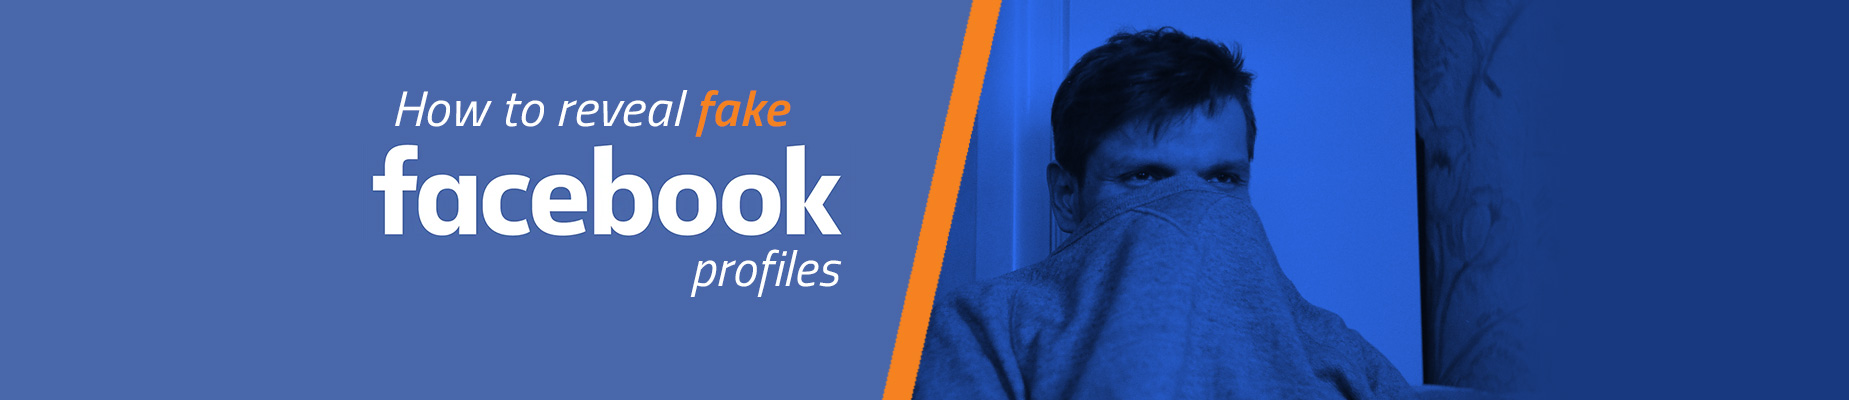 How to reveal fake Facebook profiles